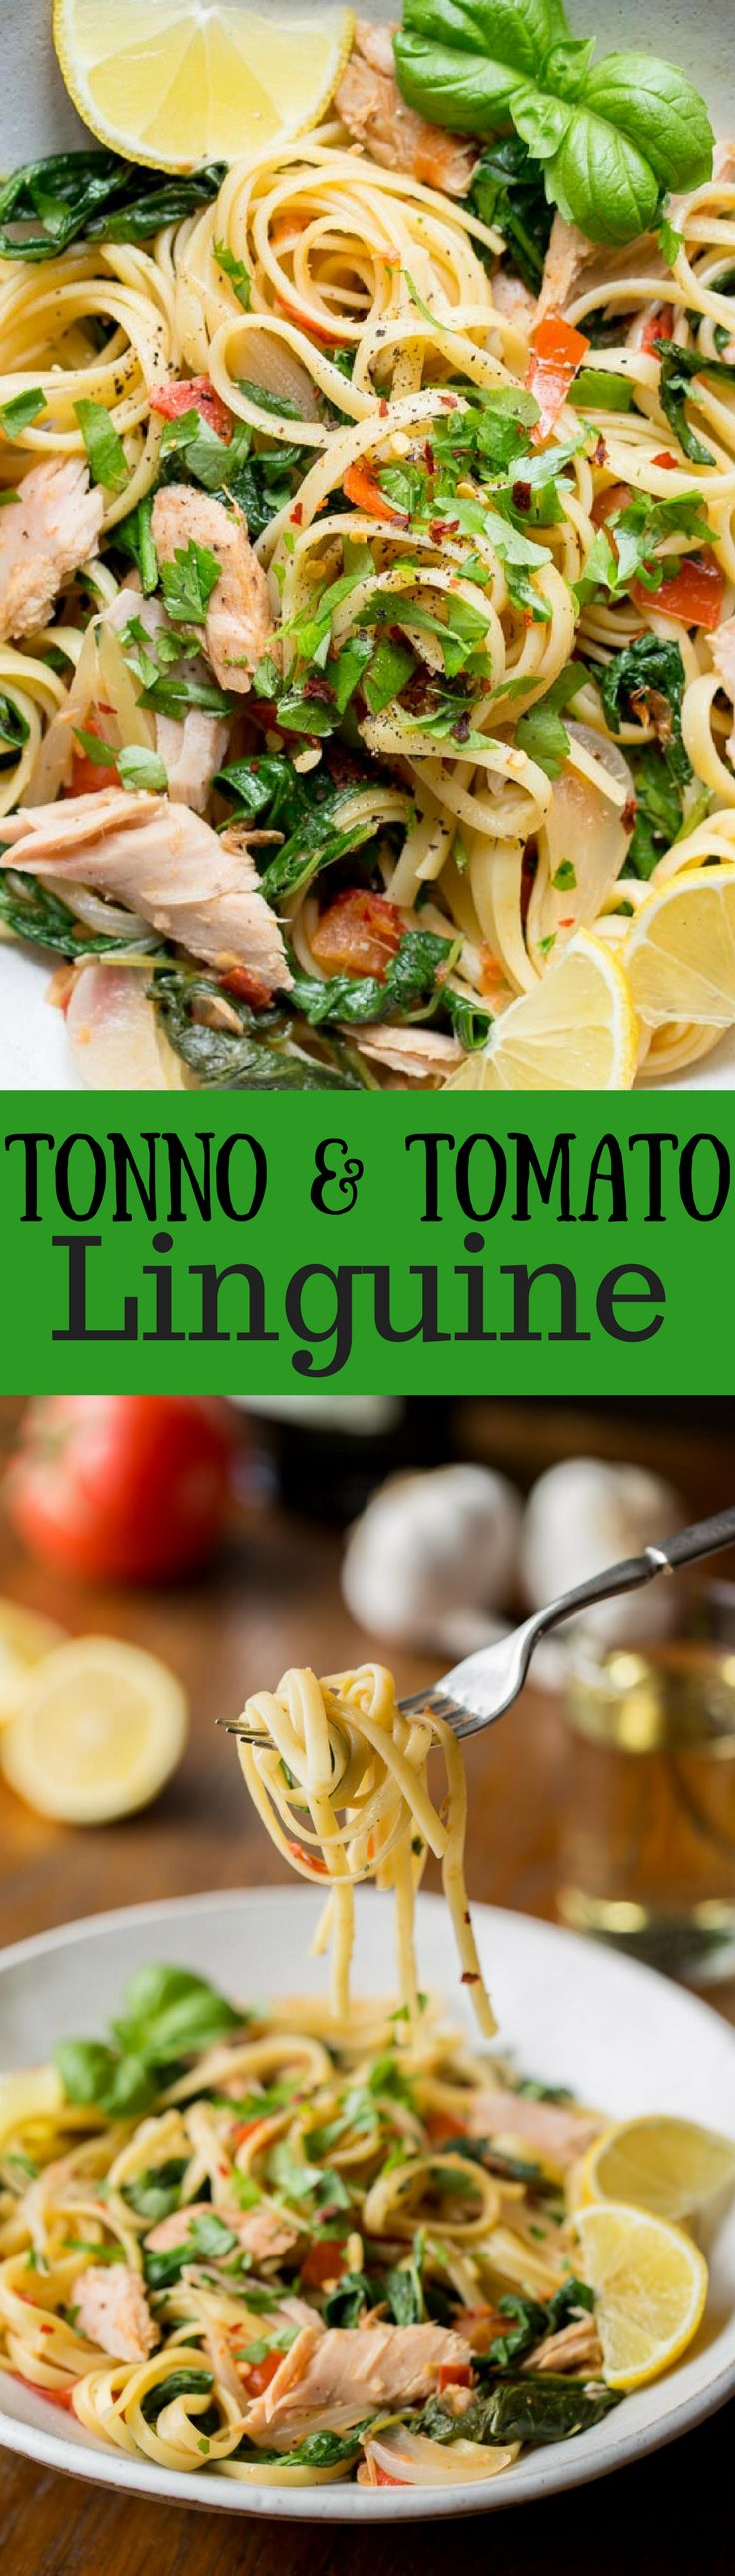 Tonno & Tomato Linguine with sweet onion and arugula ~ a delicious, quick and nutritious recipe that comes together in minutes!  www.savingdessert.com